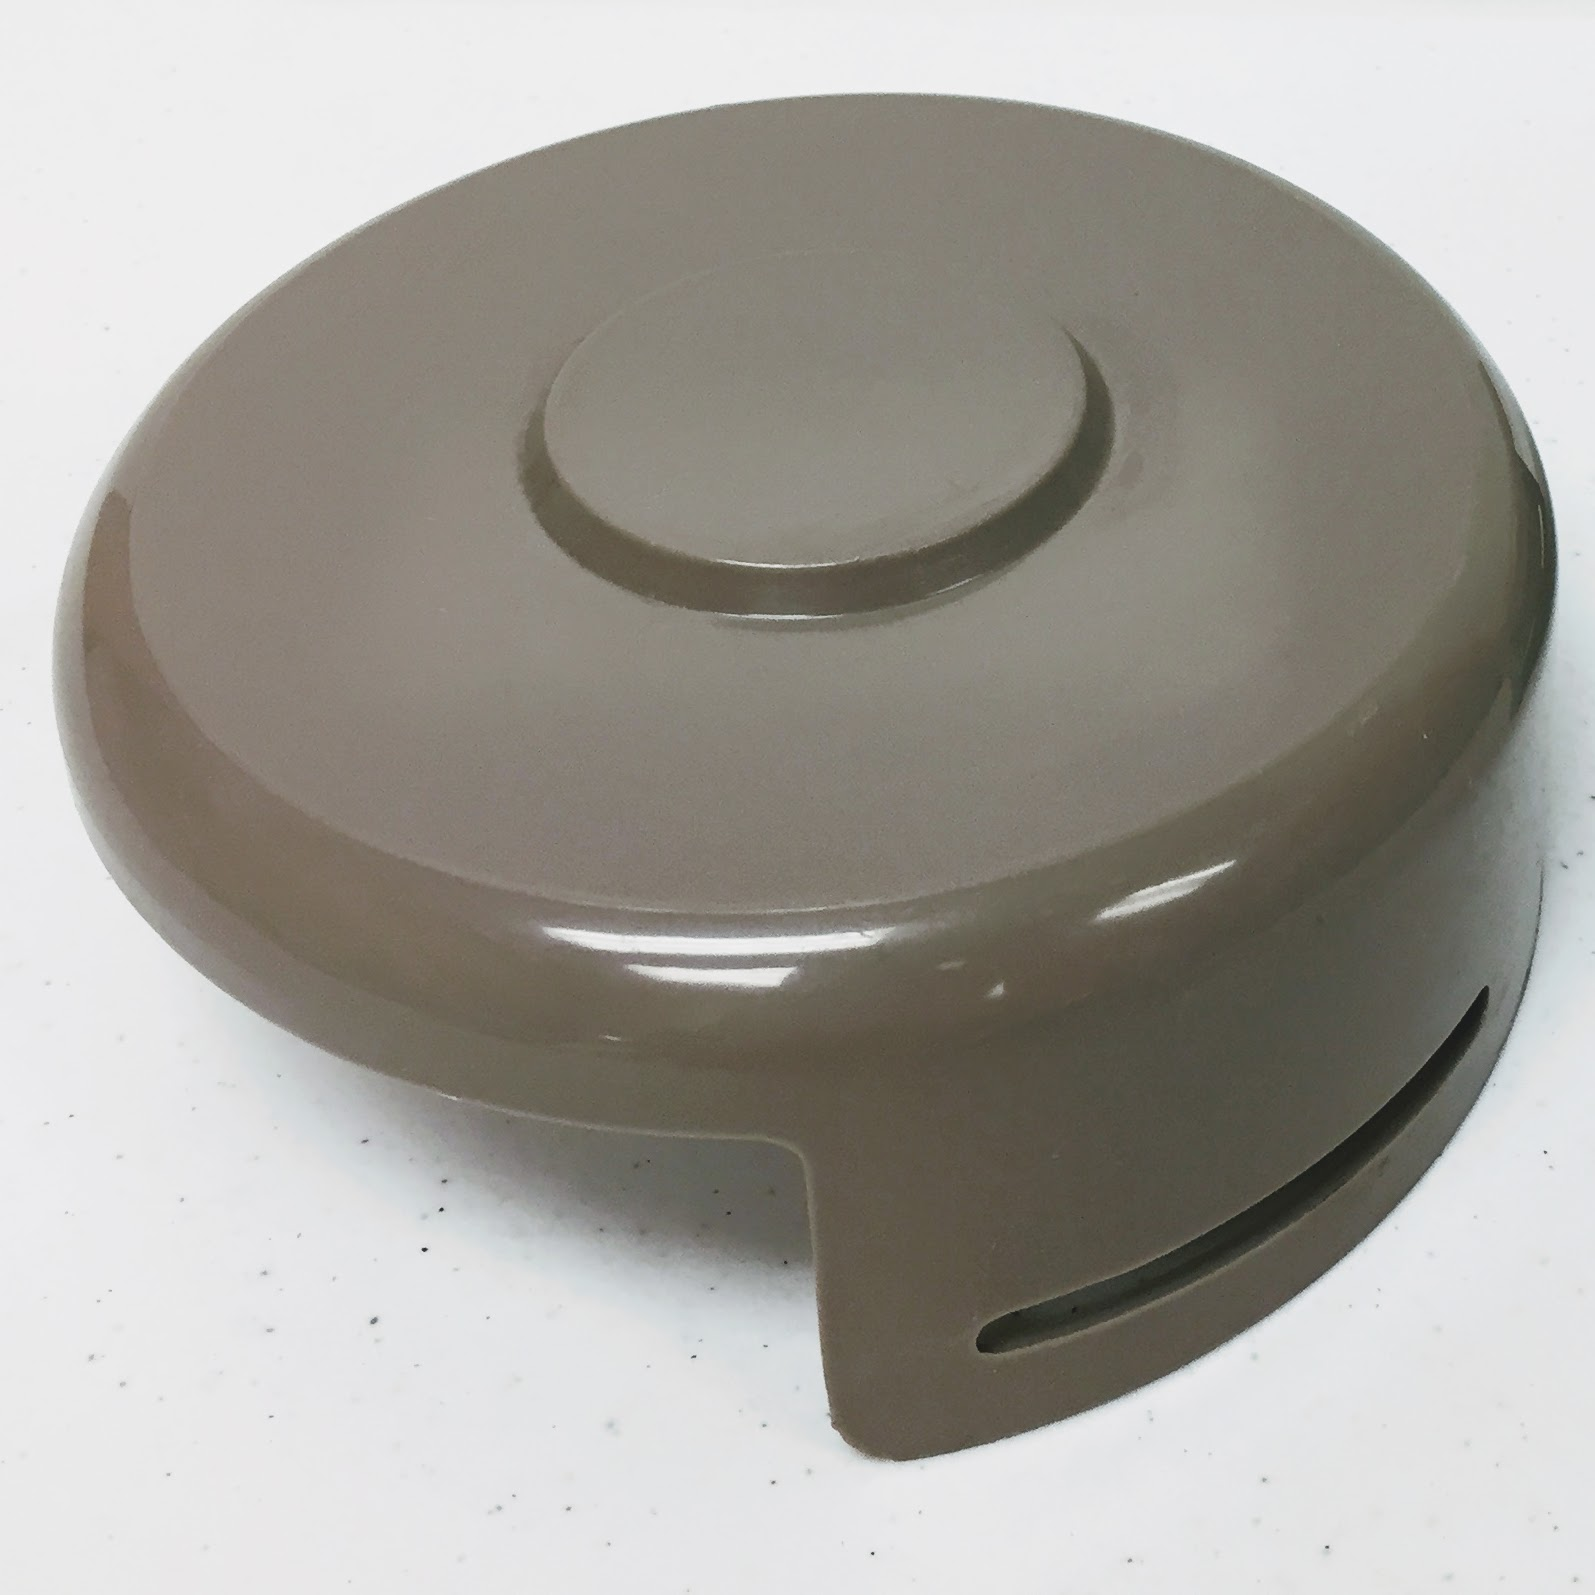 Pulley Cover for Clutch Motors